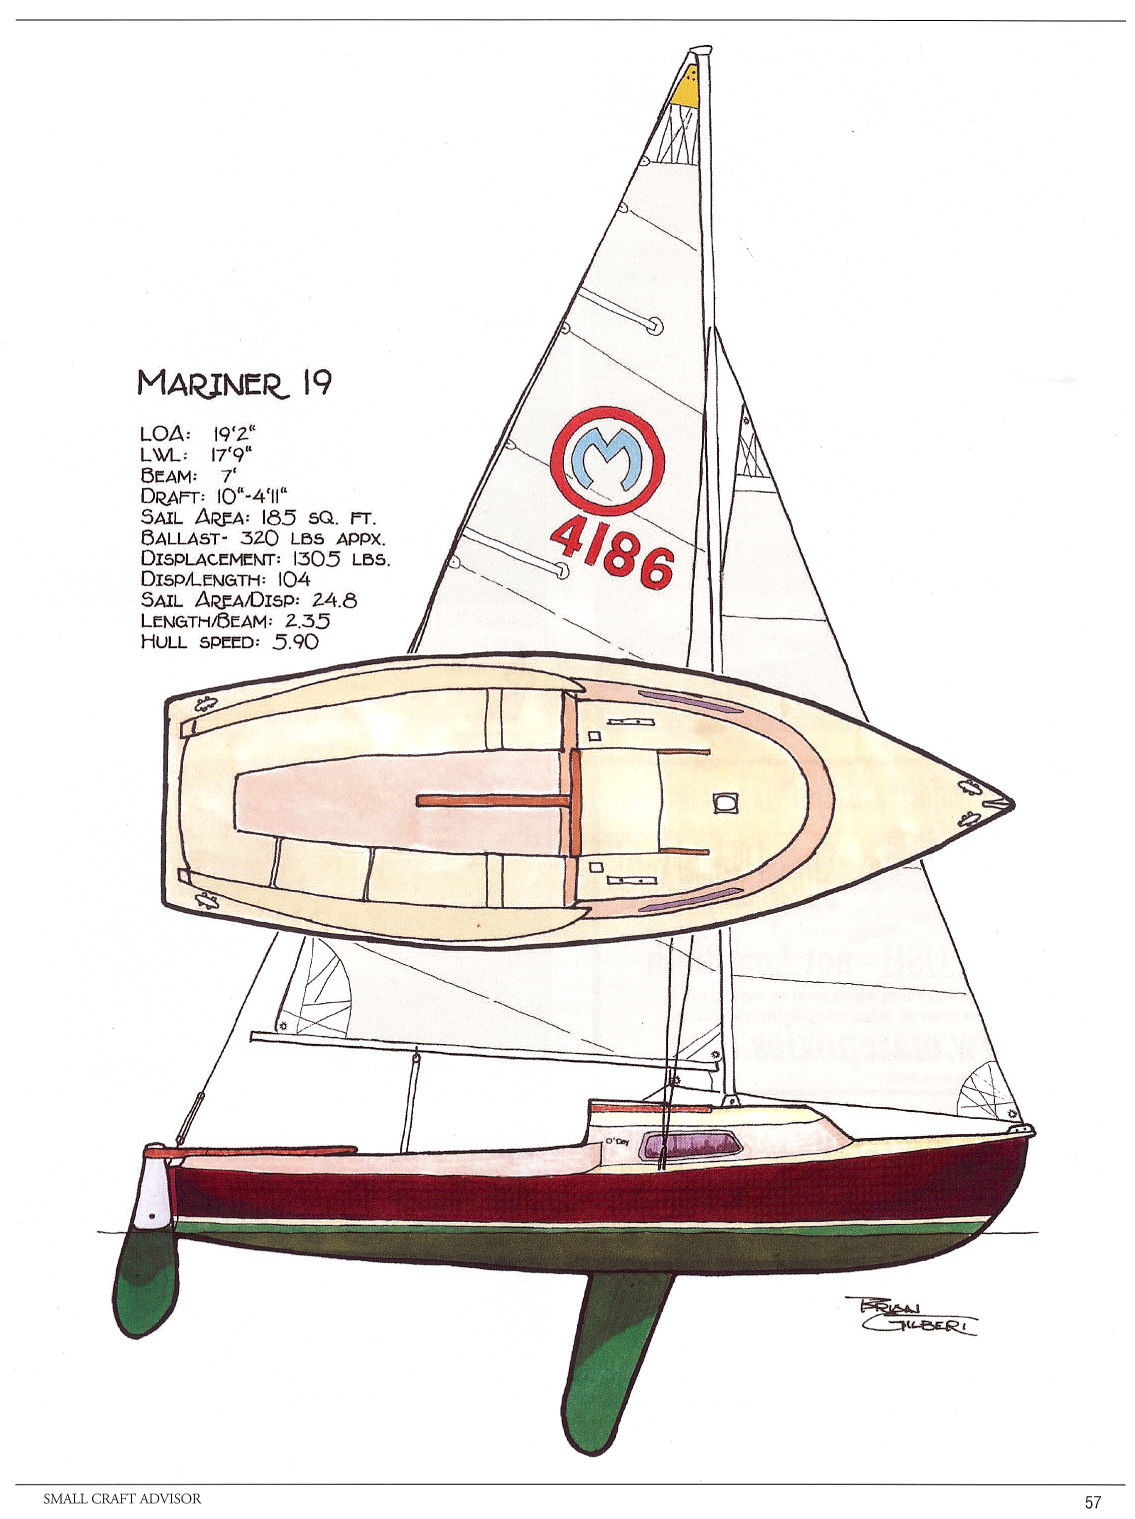 Small Craft Advisor_January_February_2008_No_49_Page_7.jpg